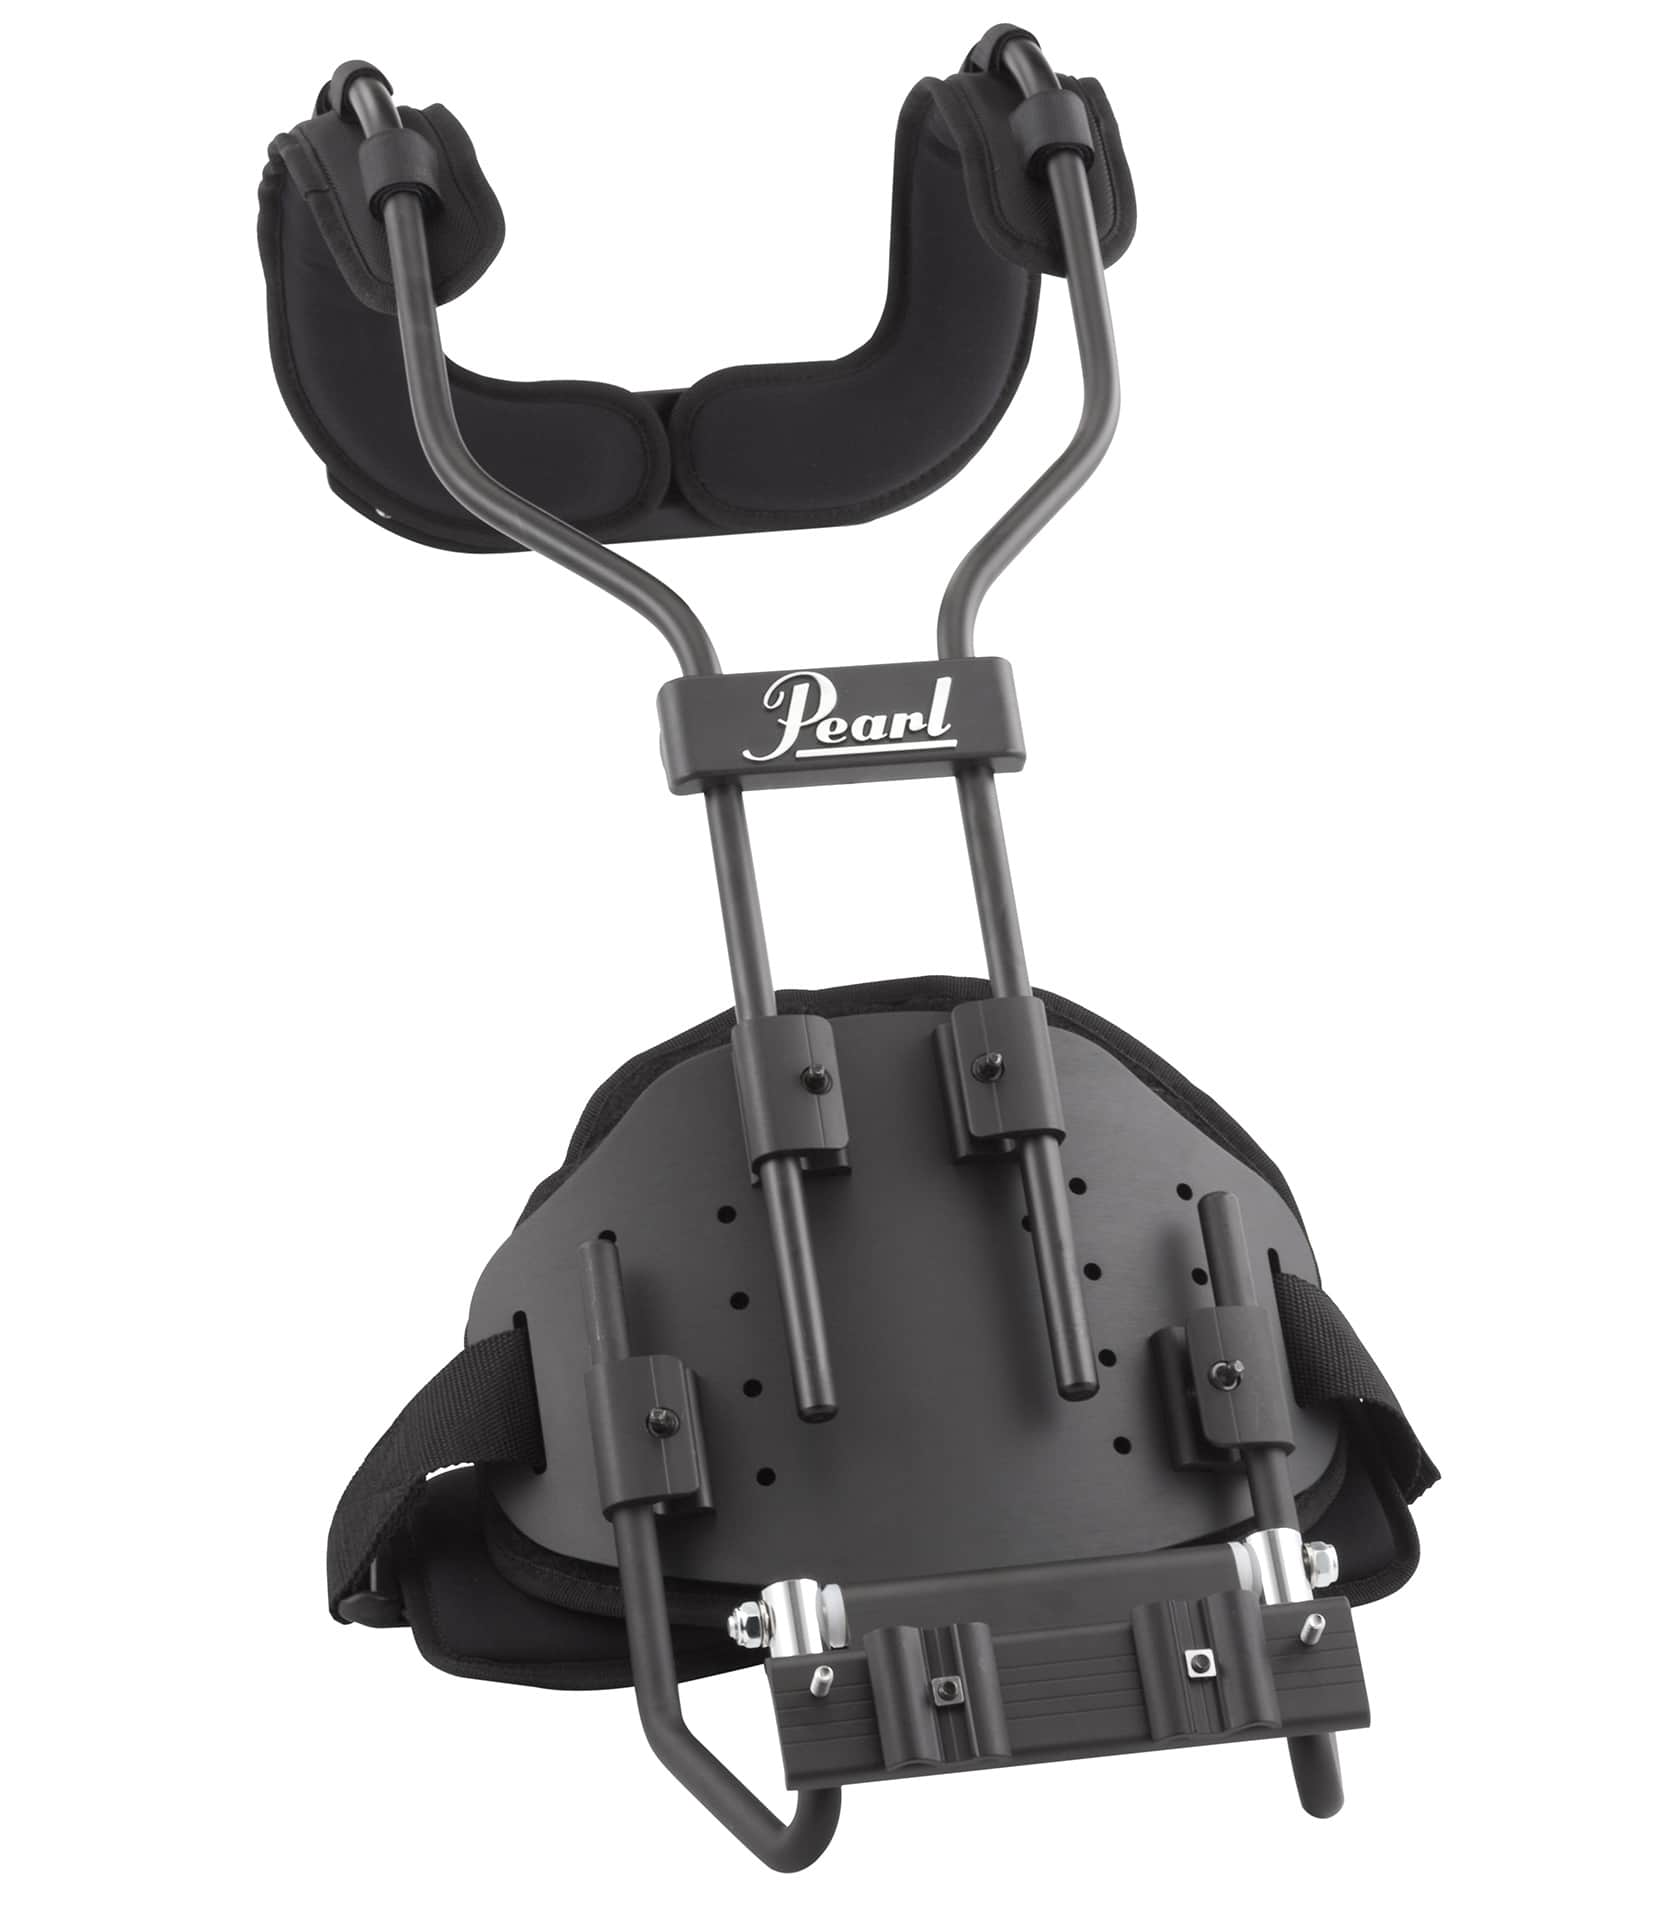 buy pearl cxs 1 cx air frame snare drum carrier